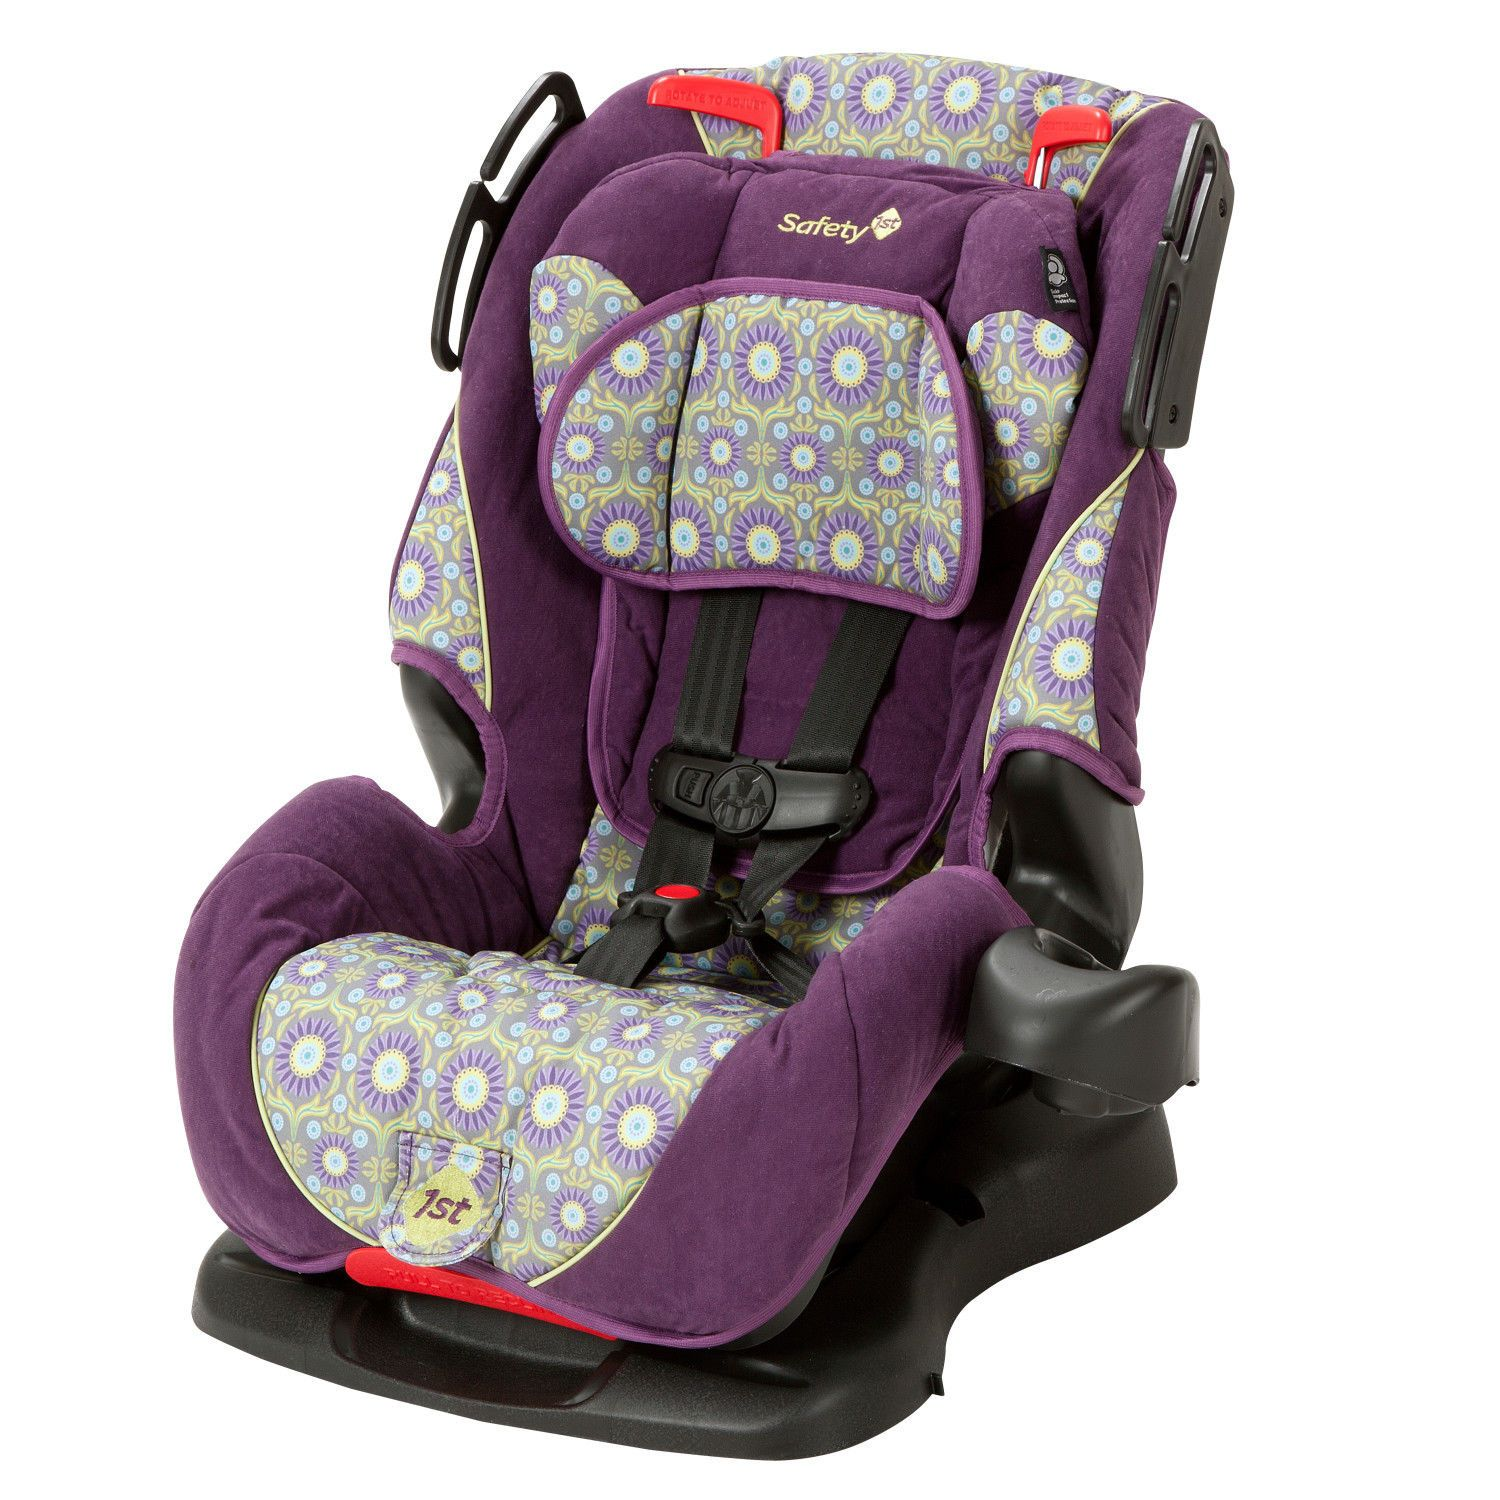 Awesome Safety 1st All In One Sport Convertible Car Seat Check More At